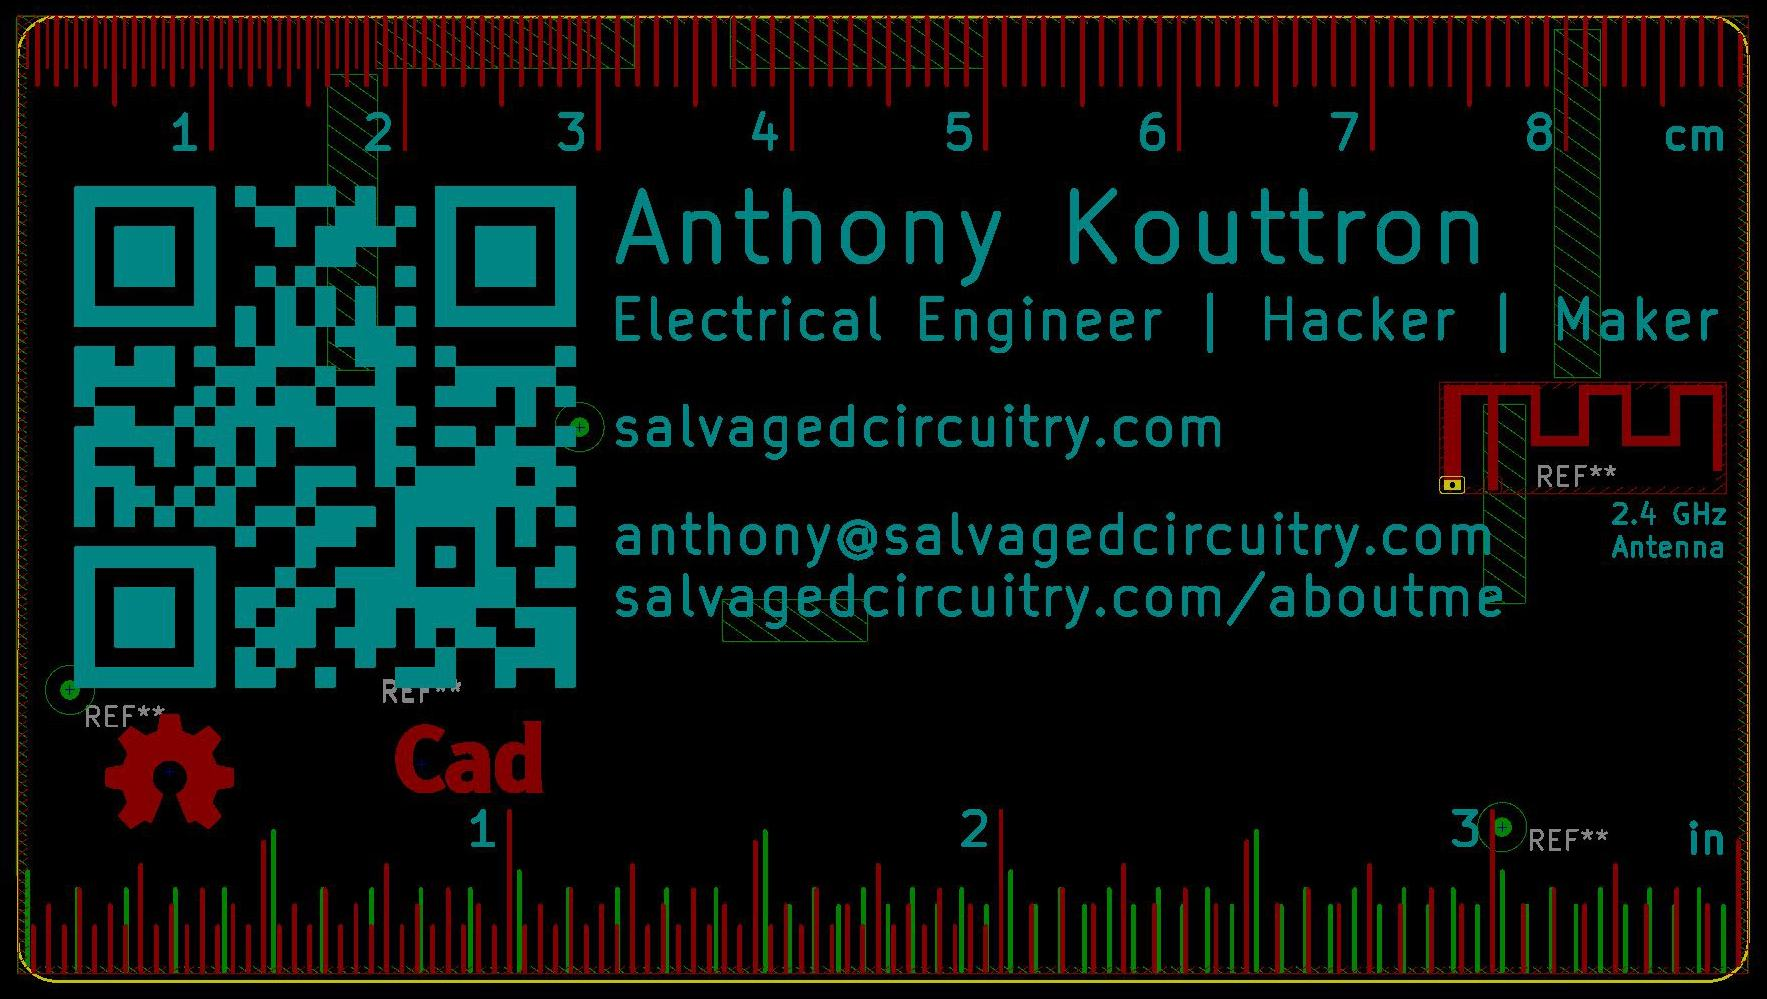 Salvaged Circuitry | Anthony Kouttron